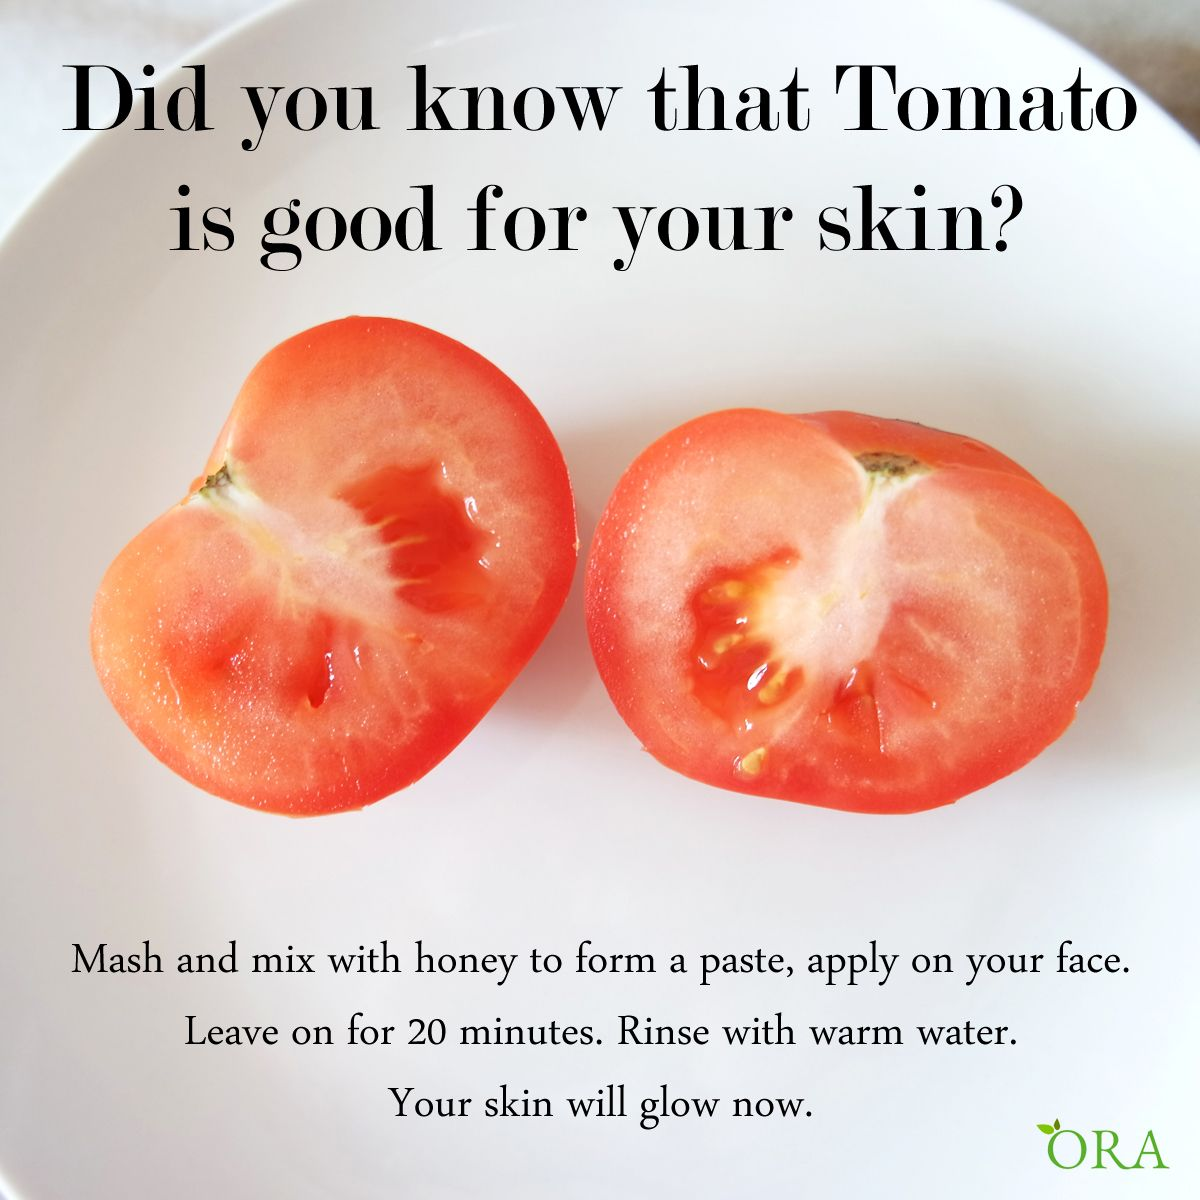 Is tomato good for your skin